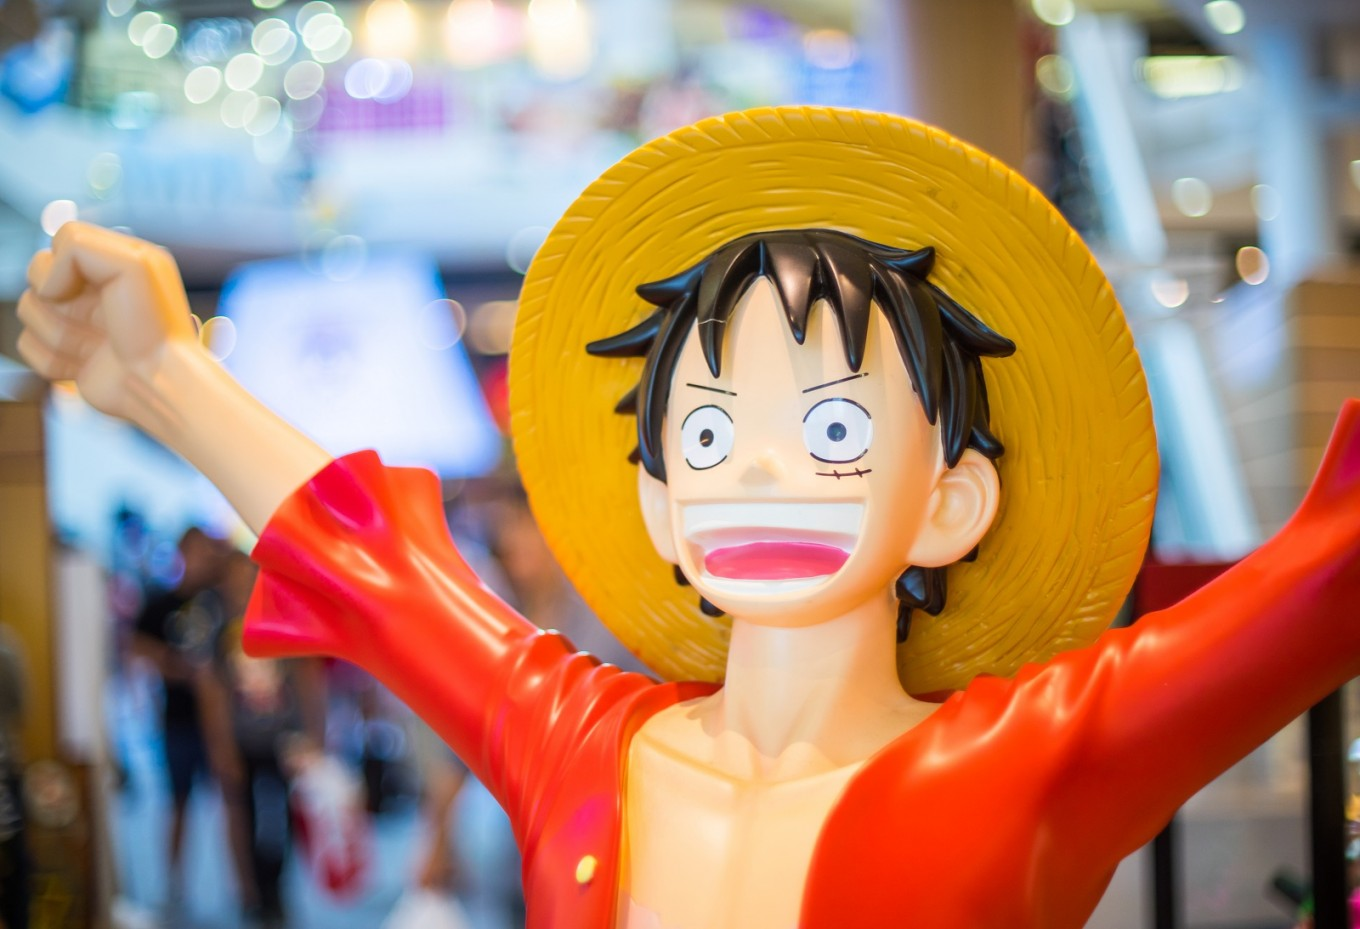 Blockbuster manga 'One Piece' exhibition under way in Malaysia